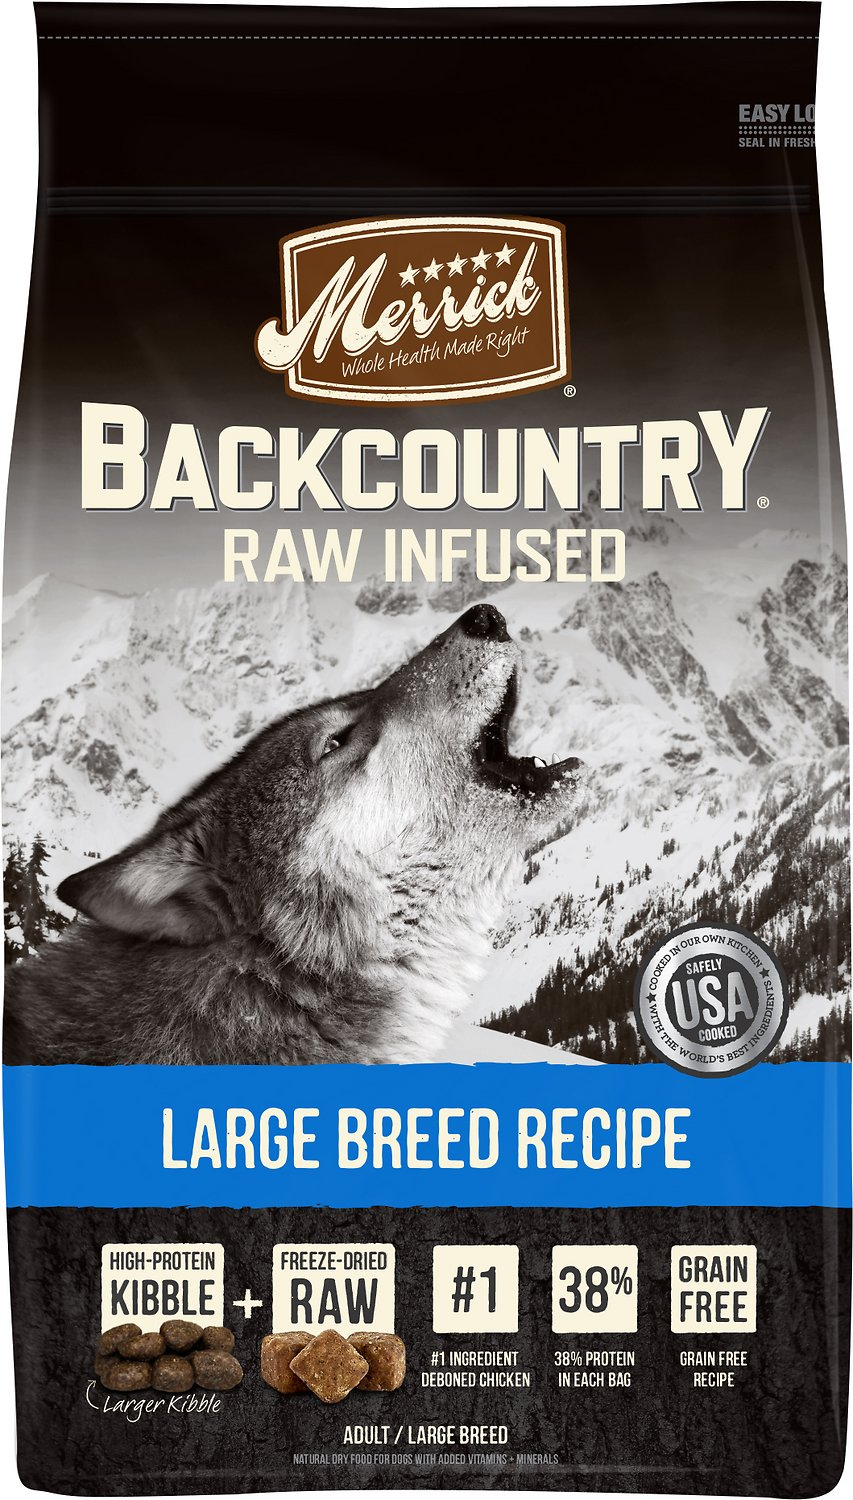 Merrick Backcountry Raw Infused Large Breed Recipe Dry Dog Food Image